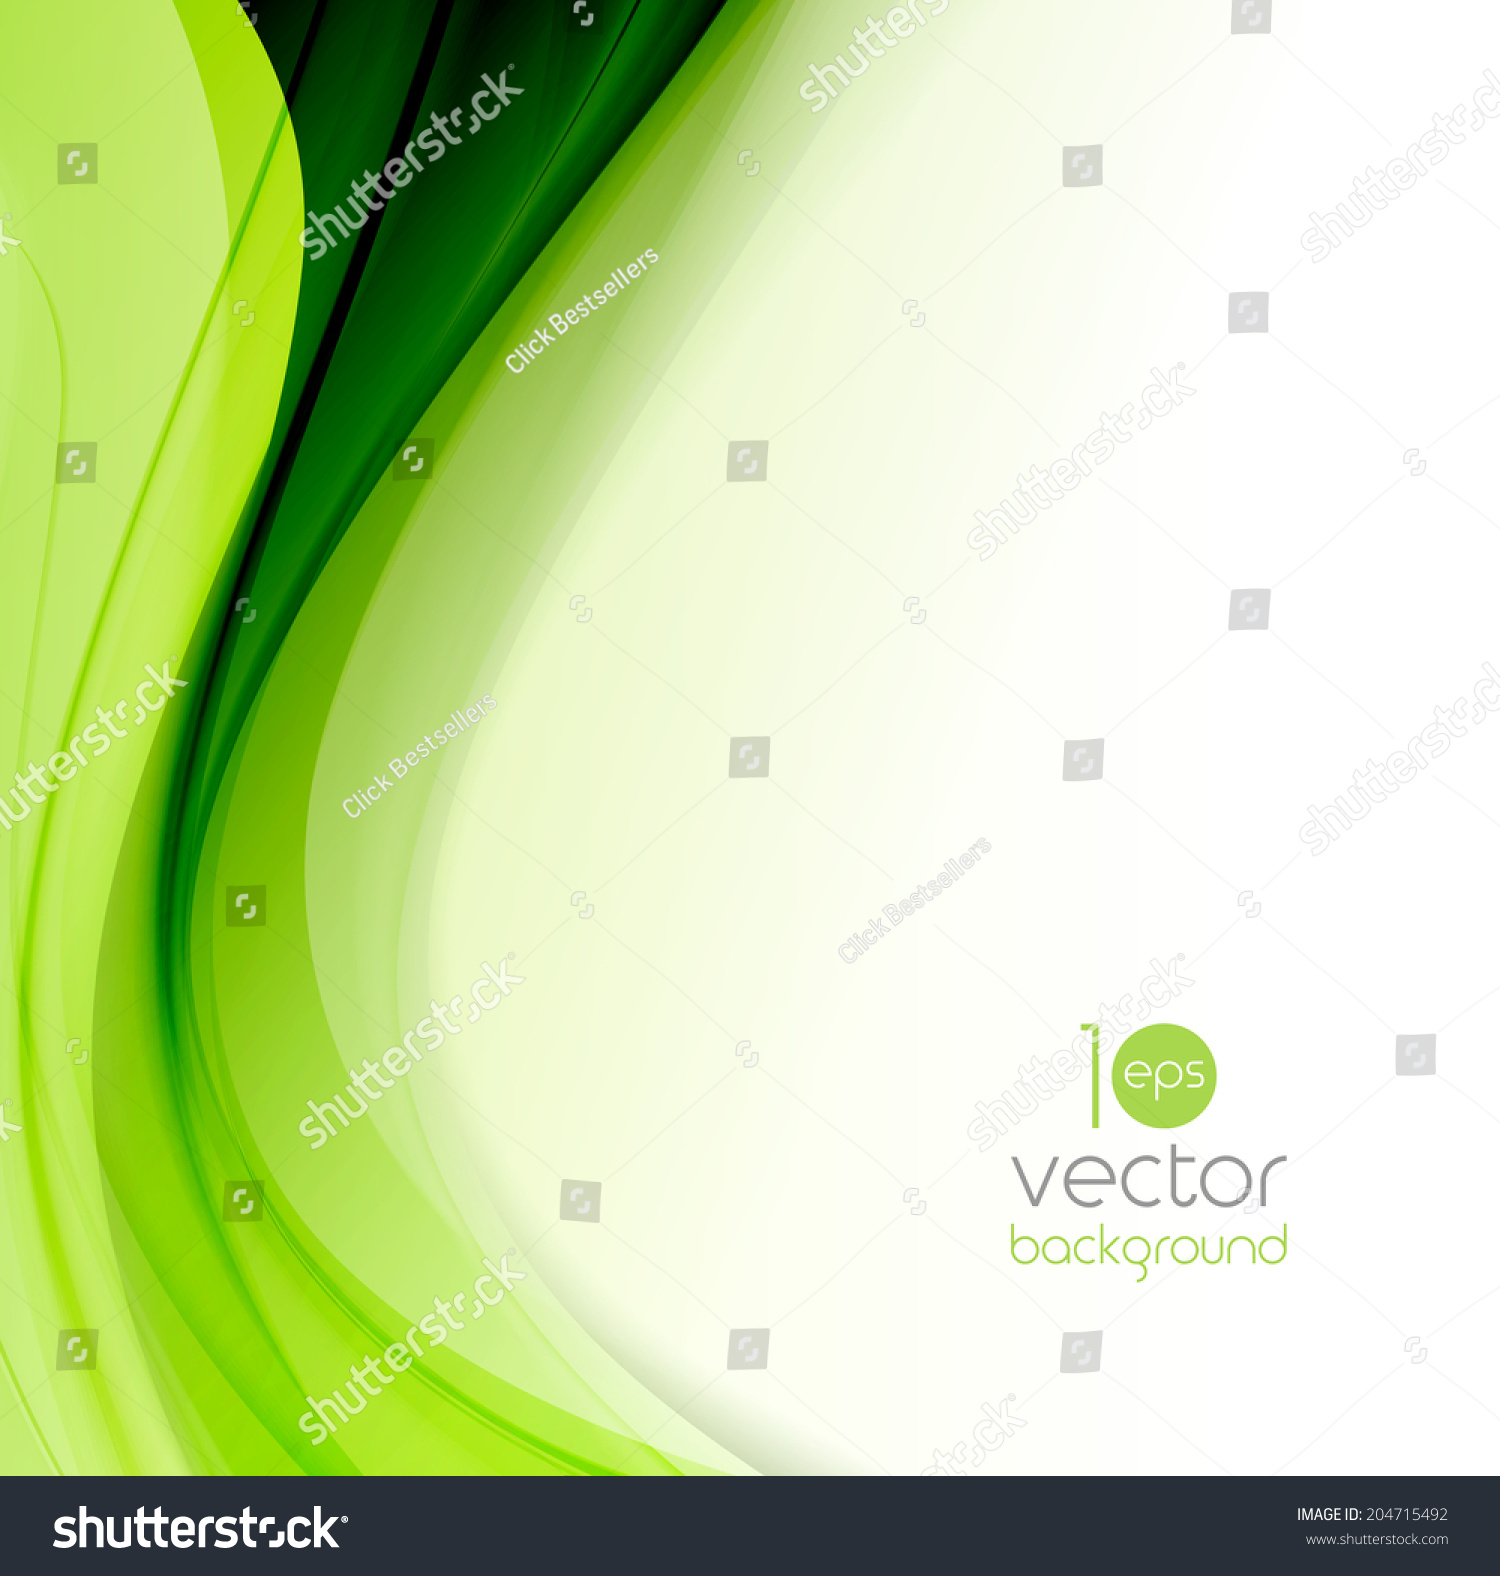 Abstract Colorful Template Vector Background Brochure Stock Vector ...